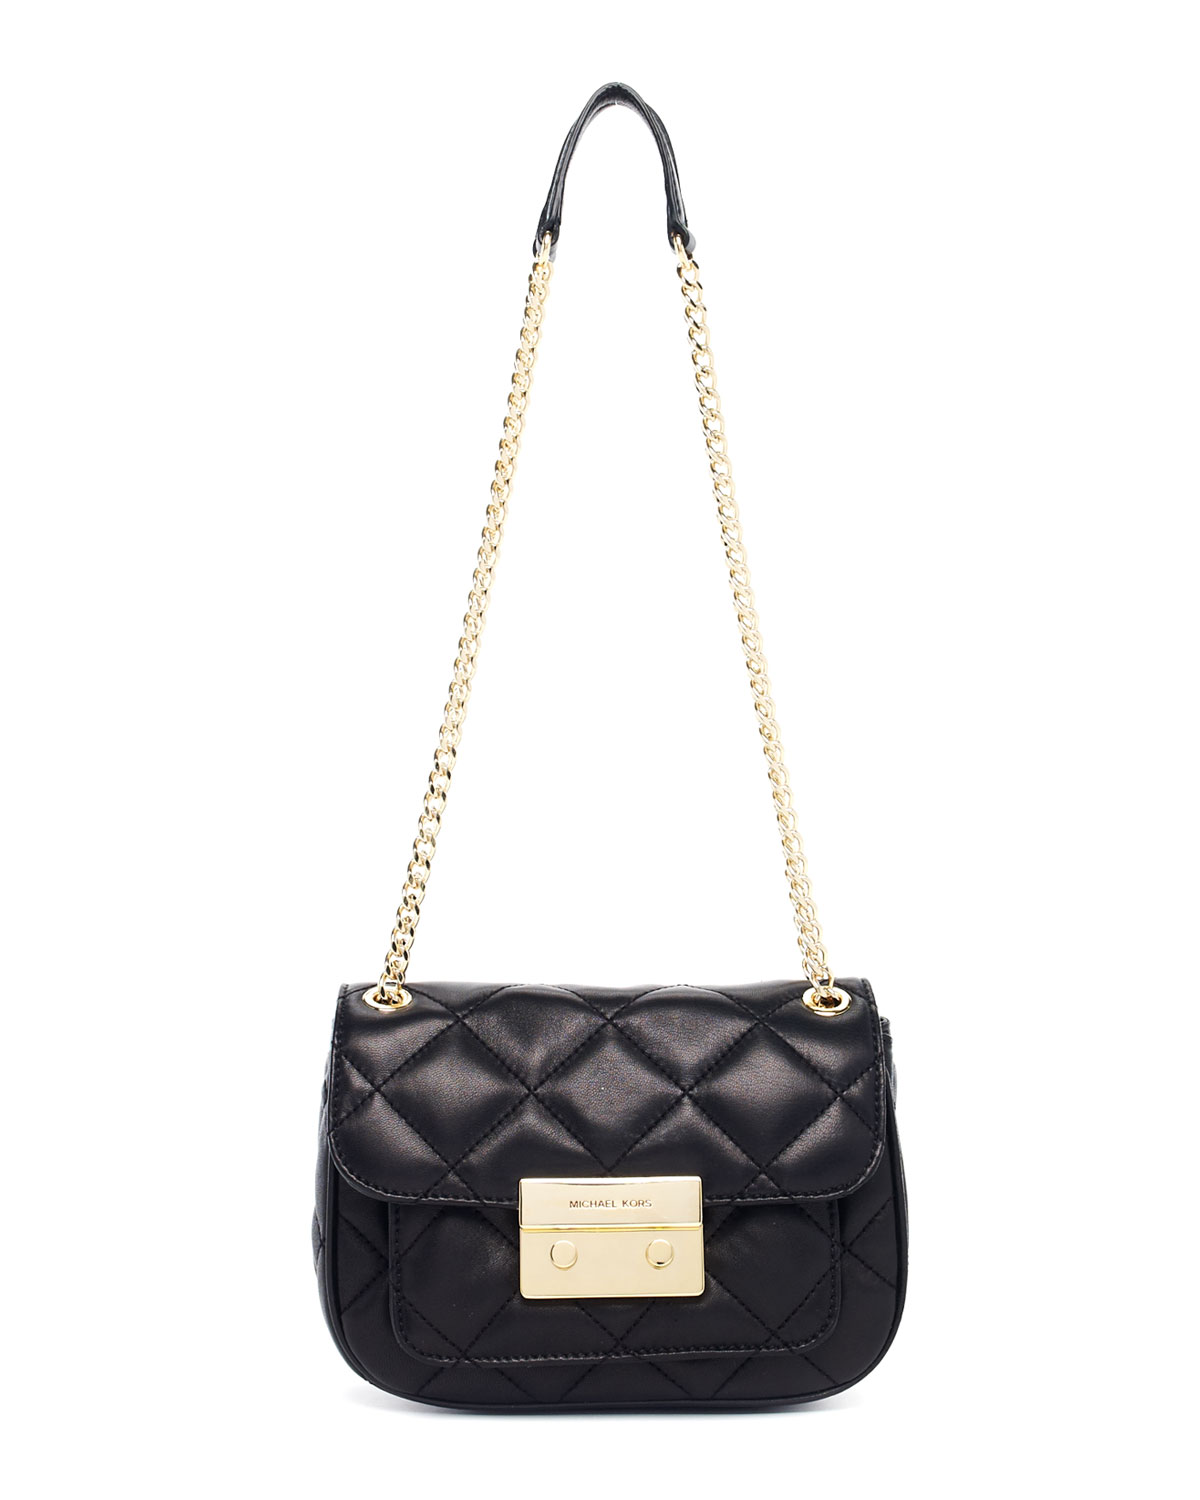 Small Black Shoulder Bag 102